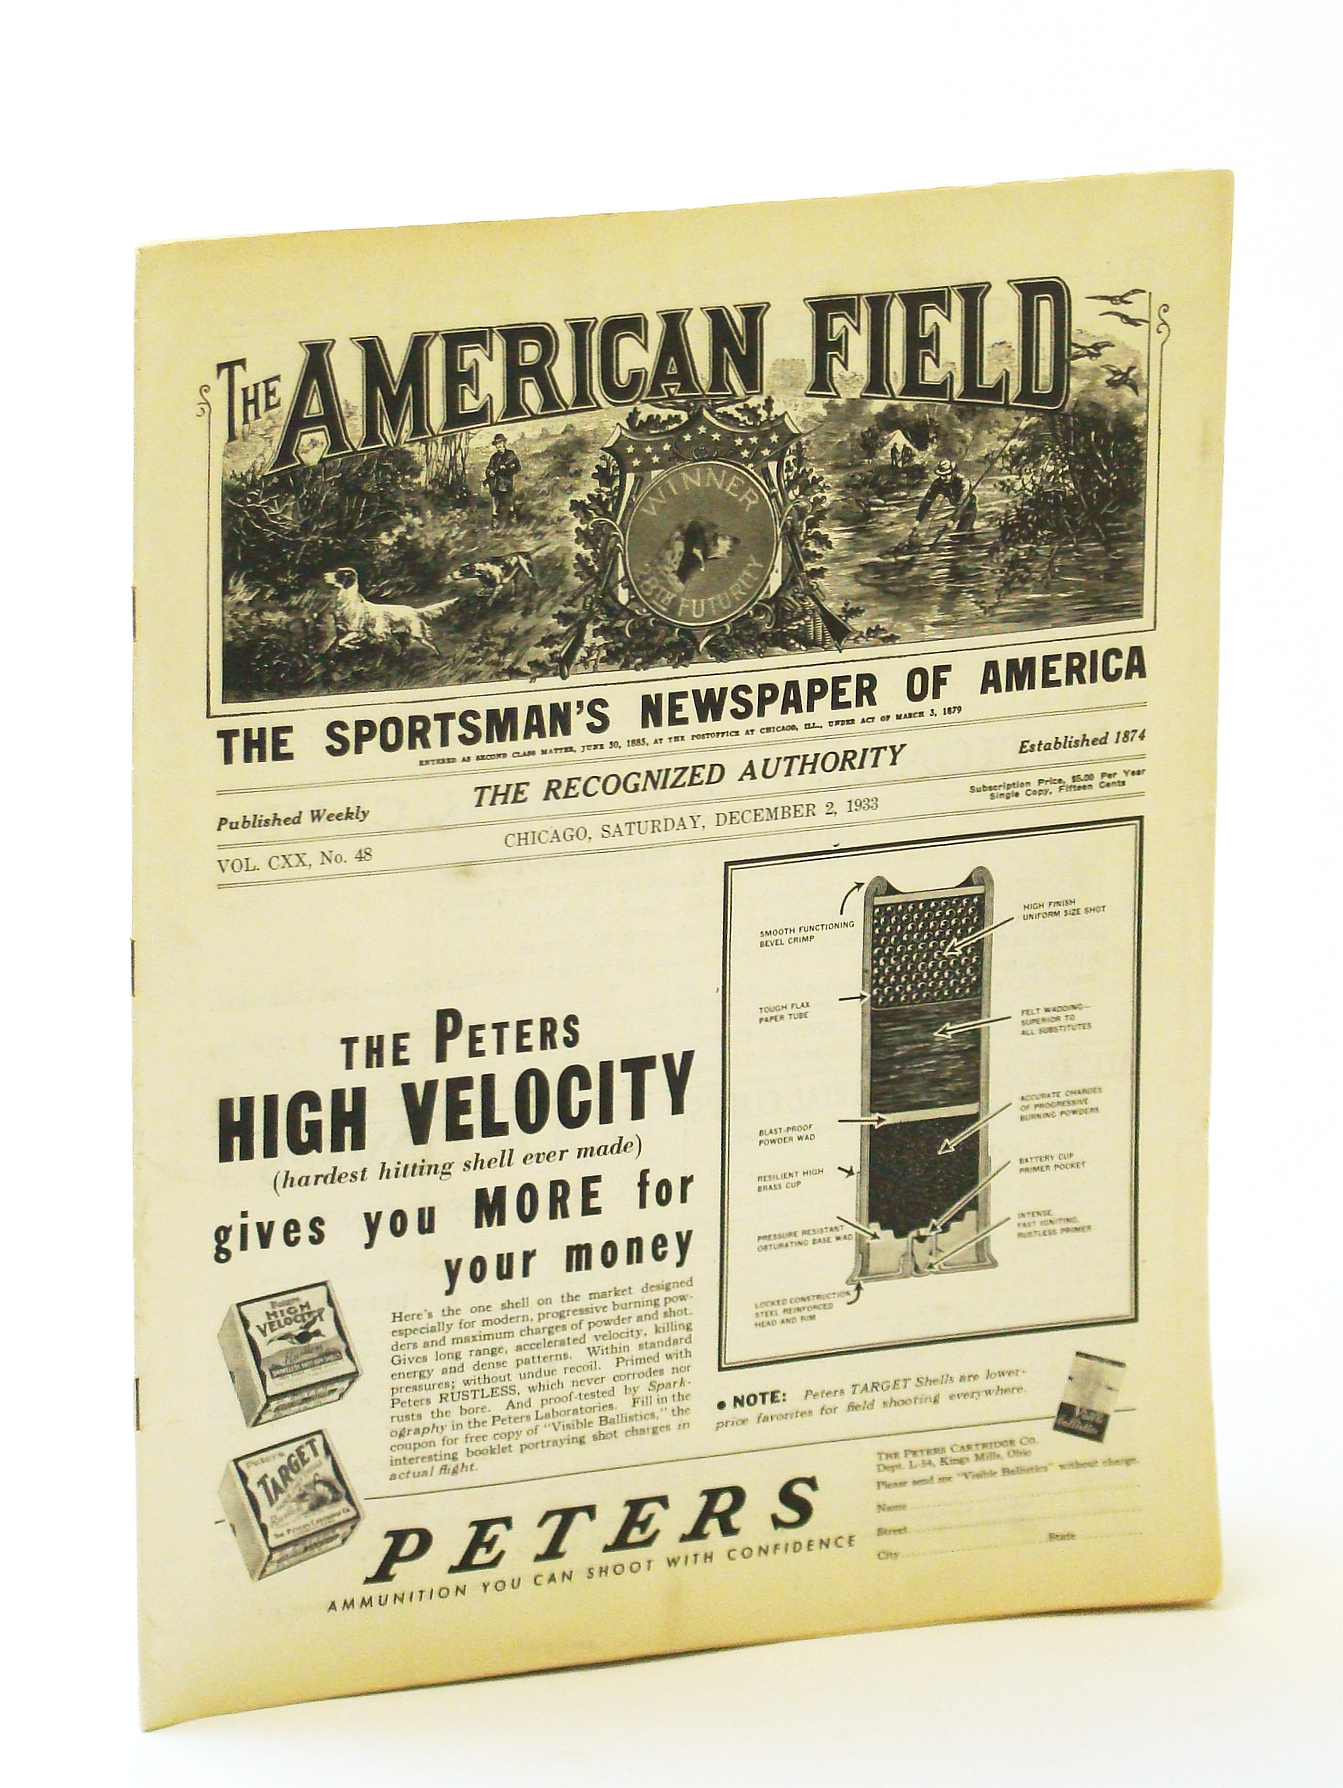 Image for The American Field - The Sportsman's Newspaper [Magazine] of America, December [Dec.) 2, 1933, Vol. CXX, No. 48 - American Jack Snipe Society